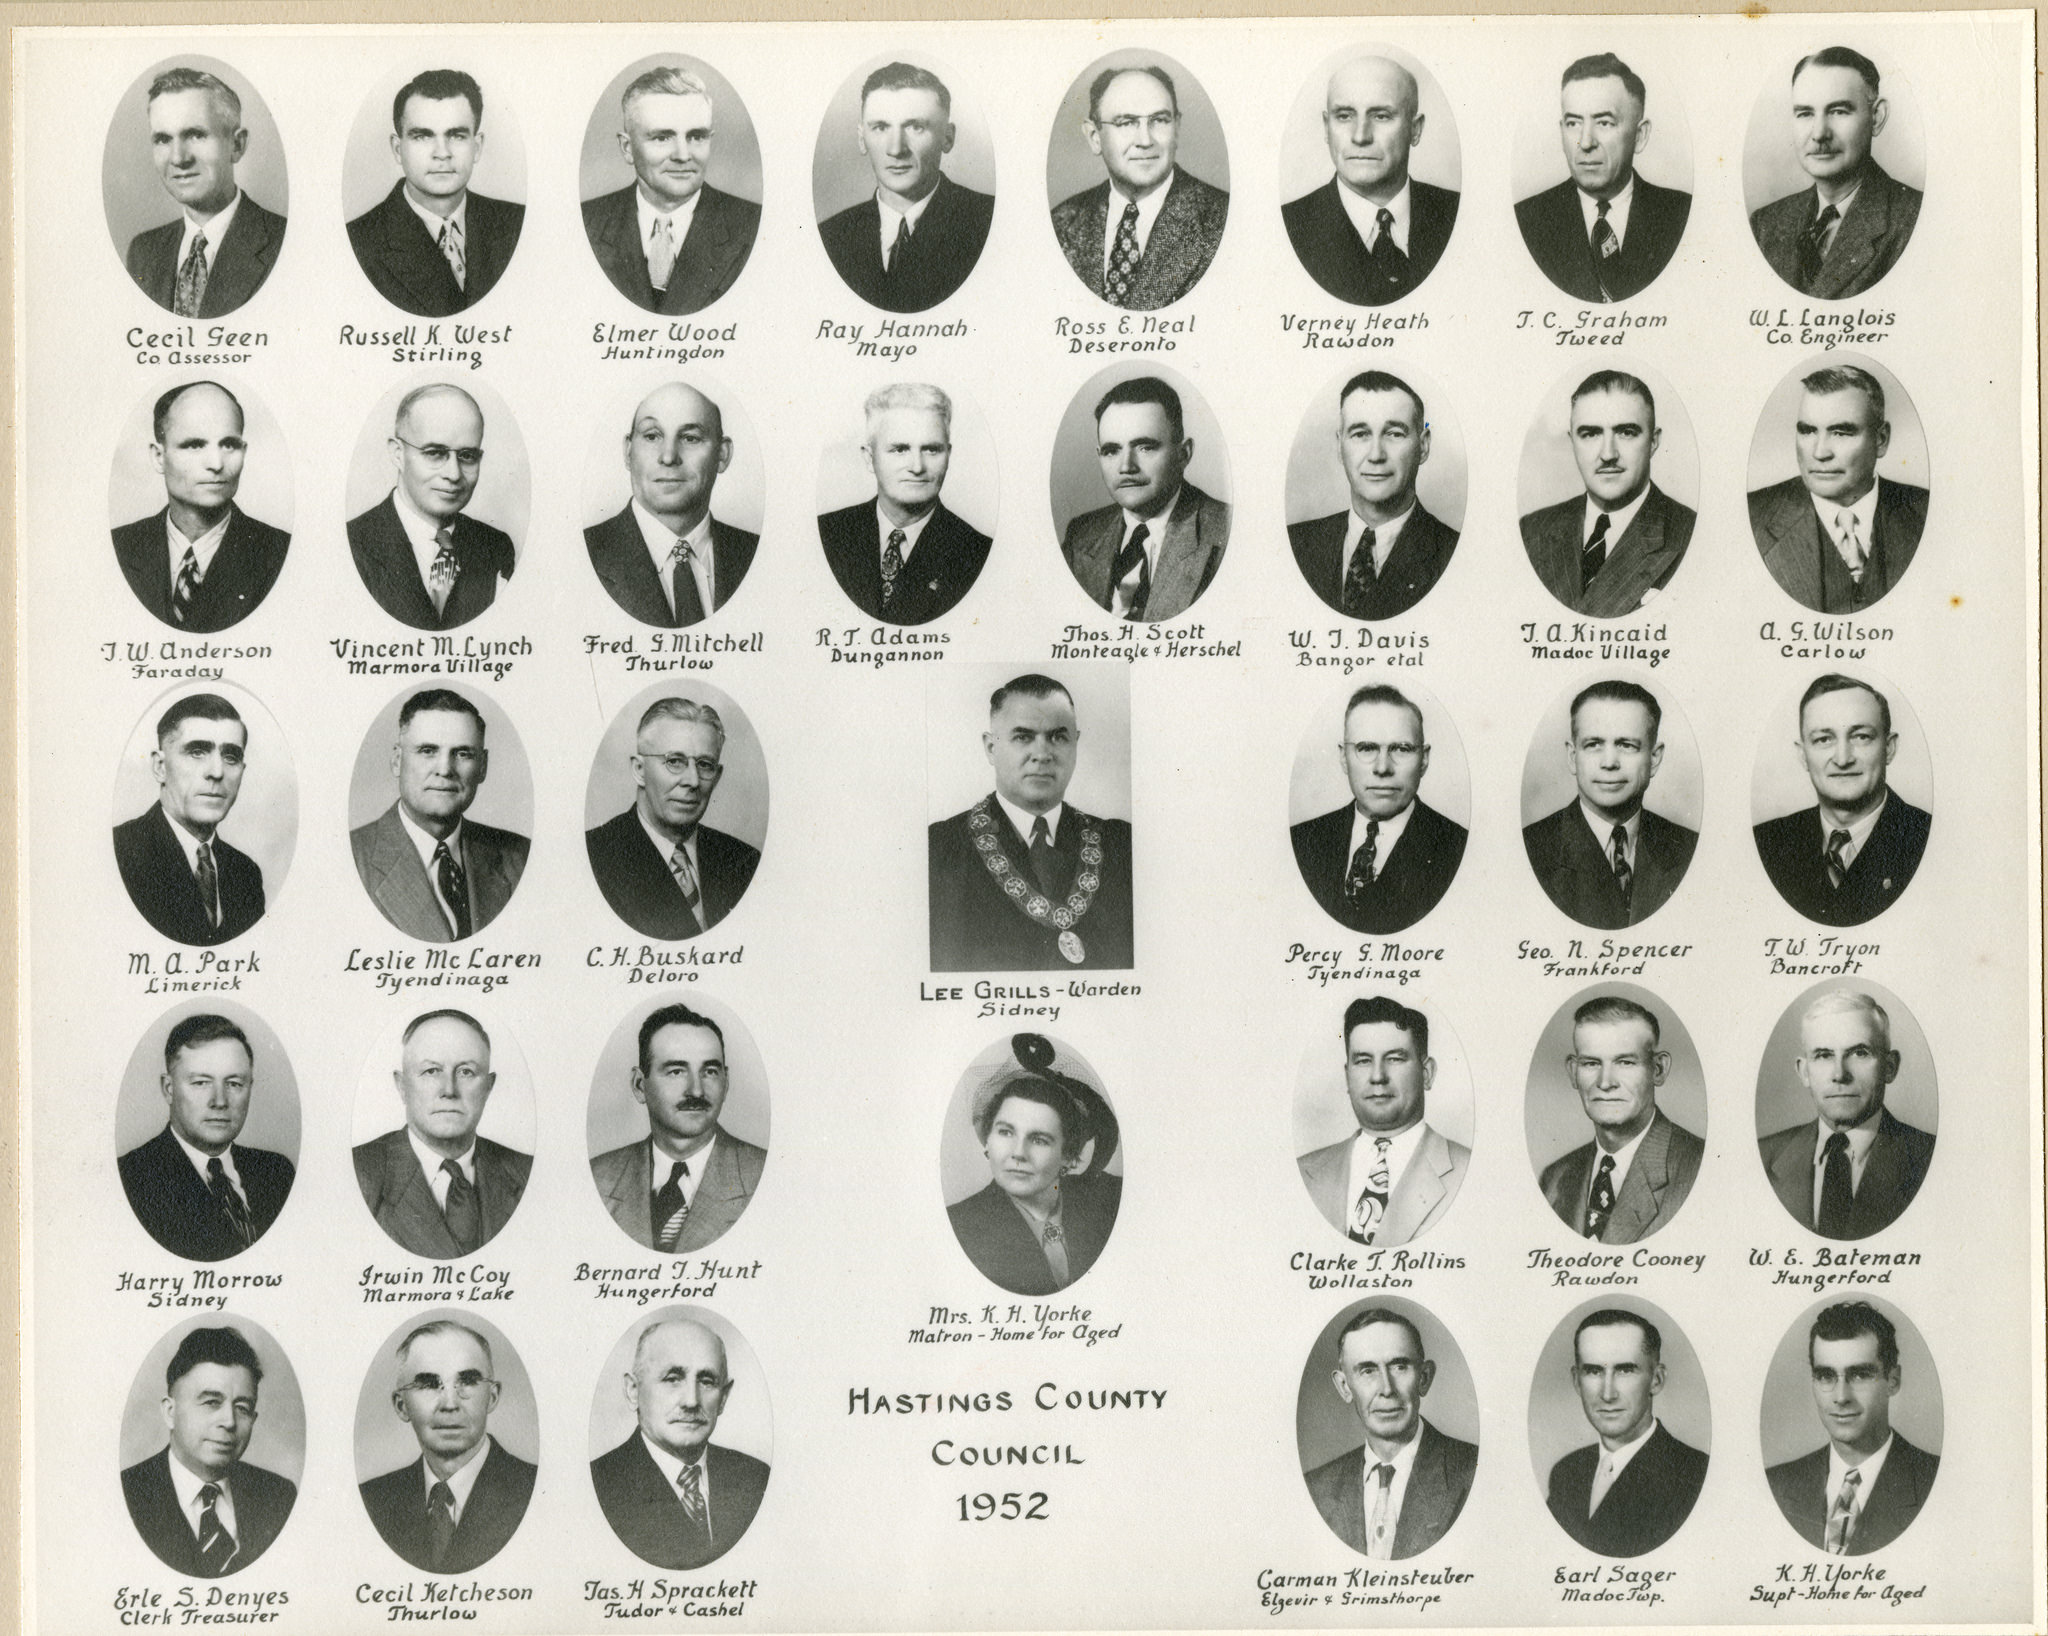 1952 County Council